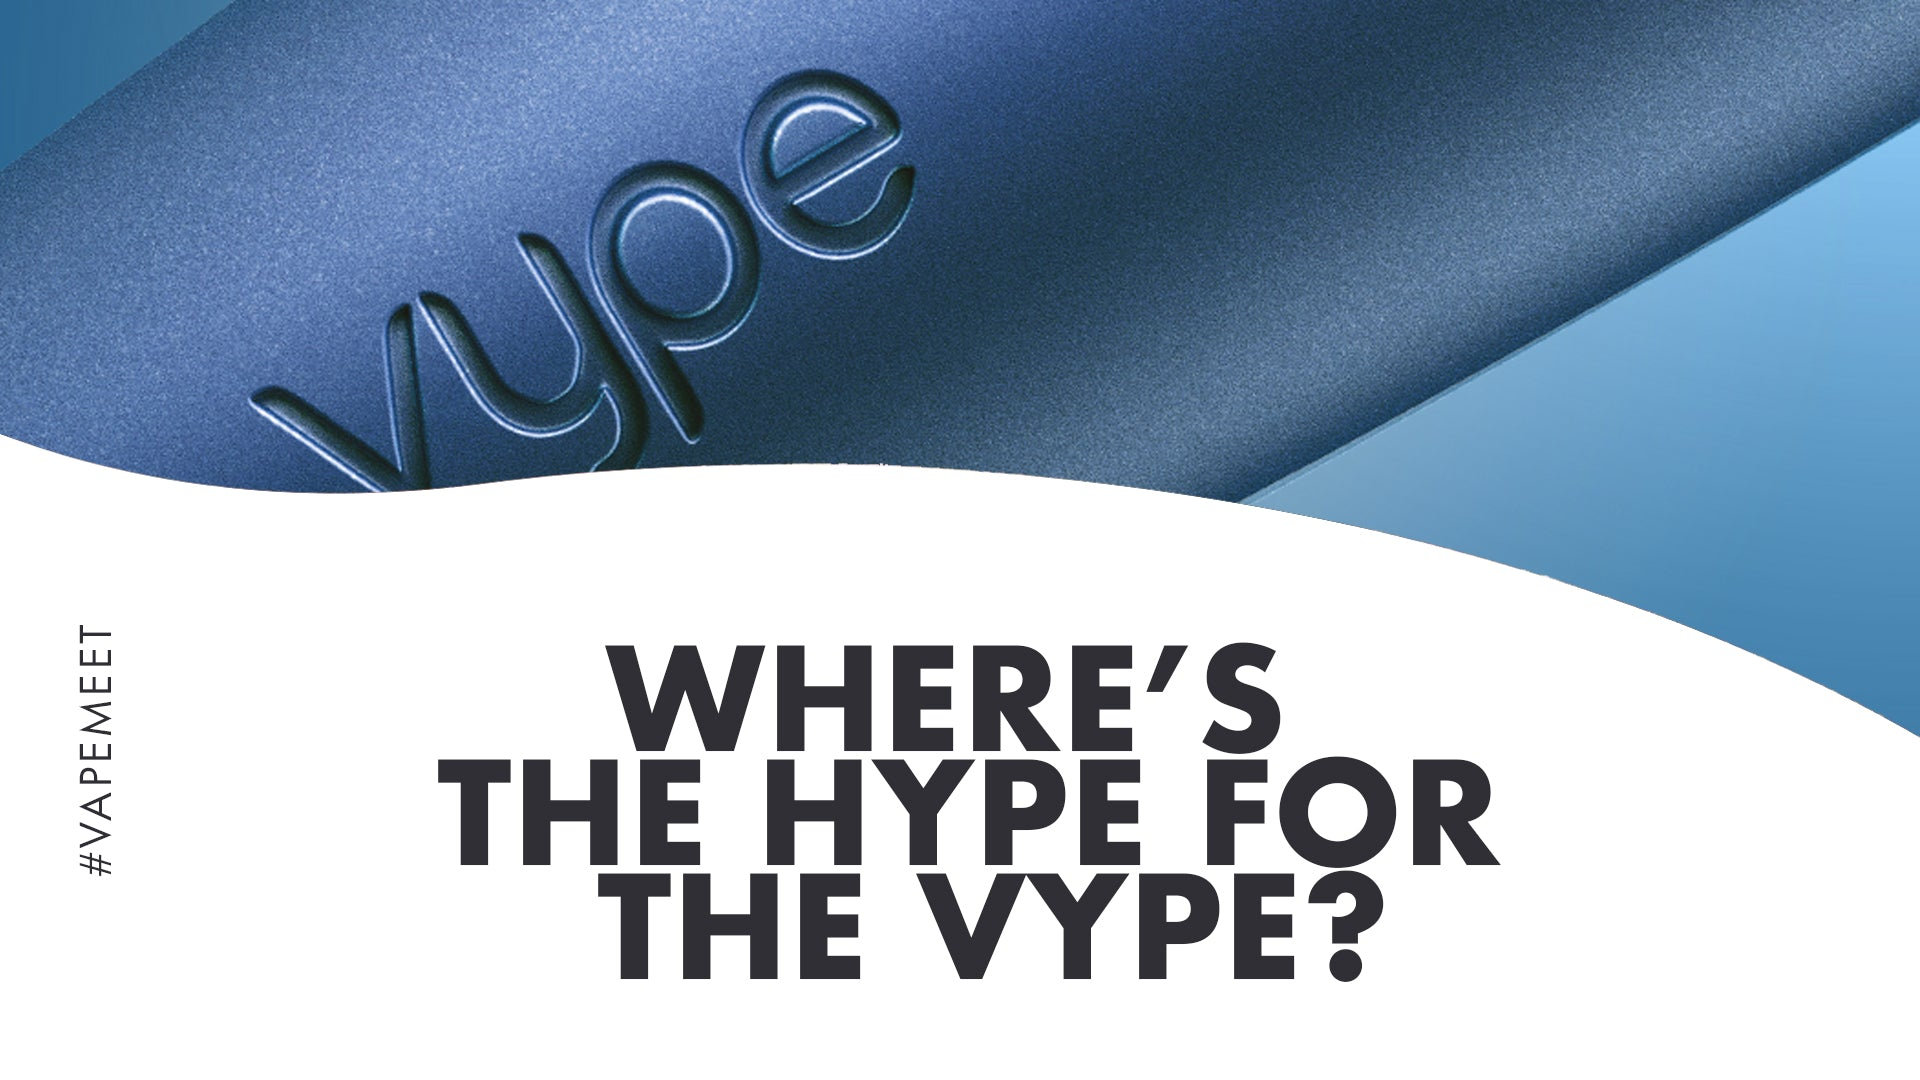 Where's the Hype for the VYPE?